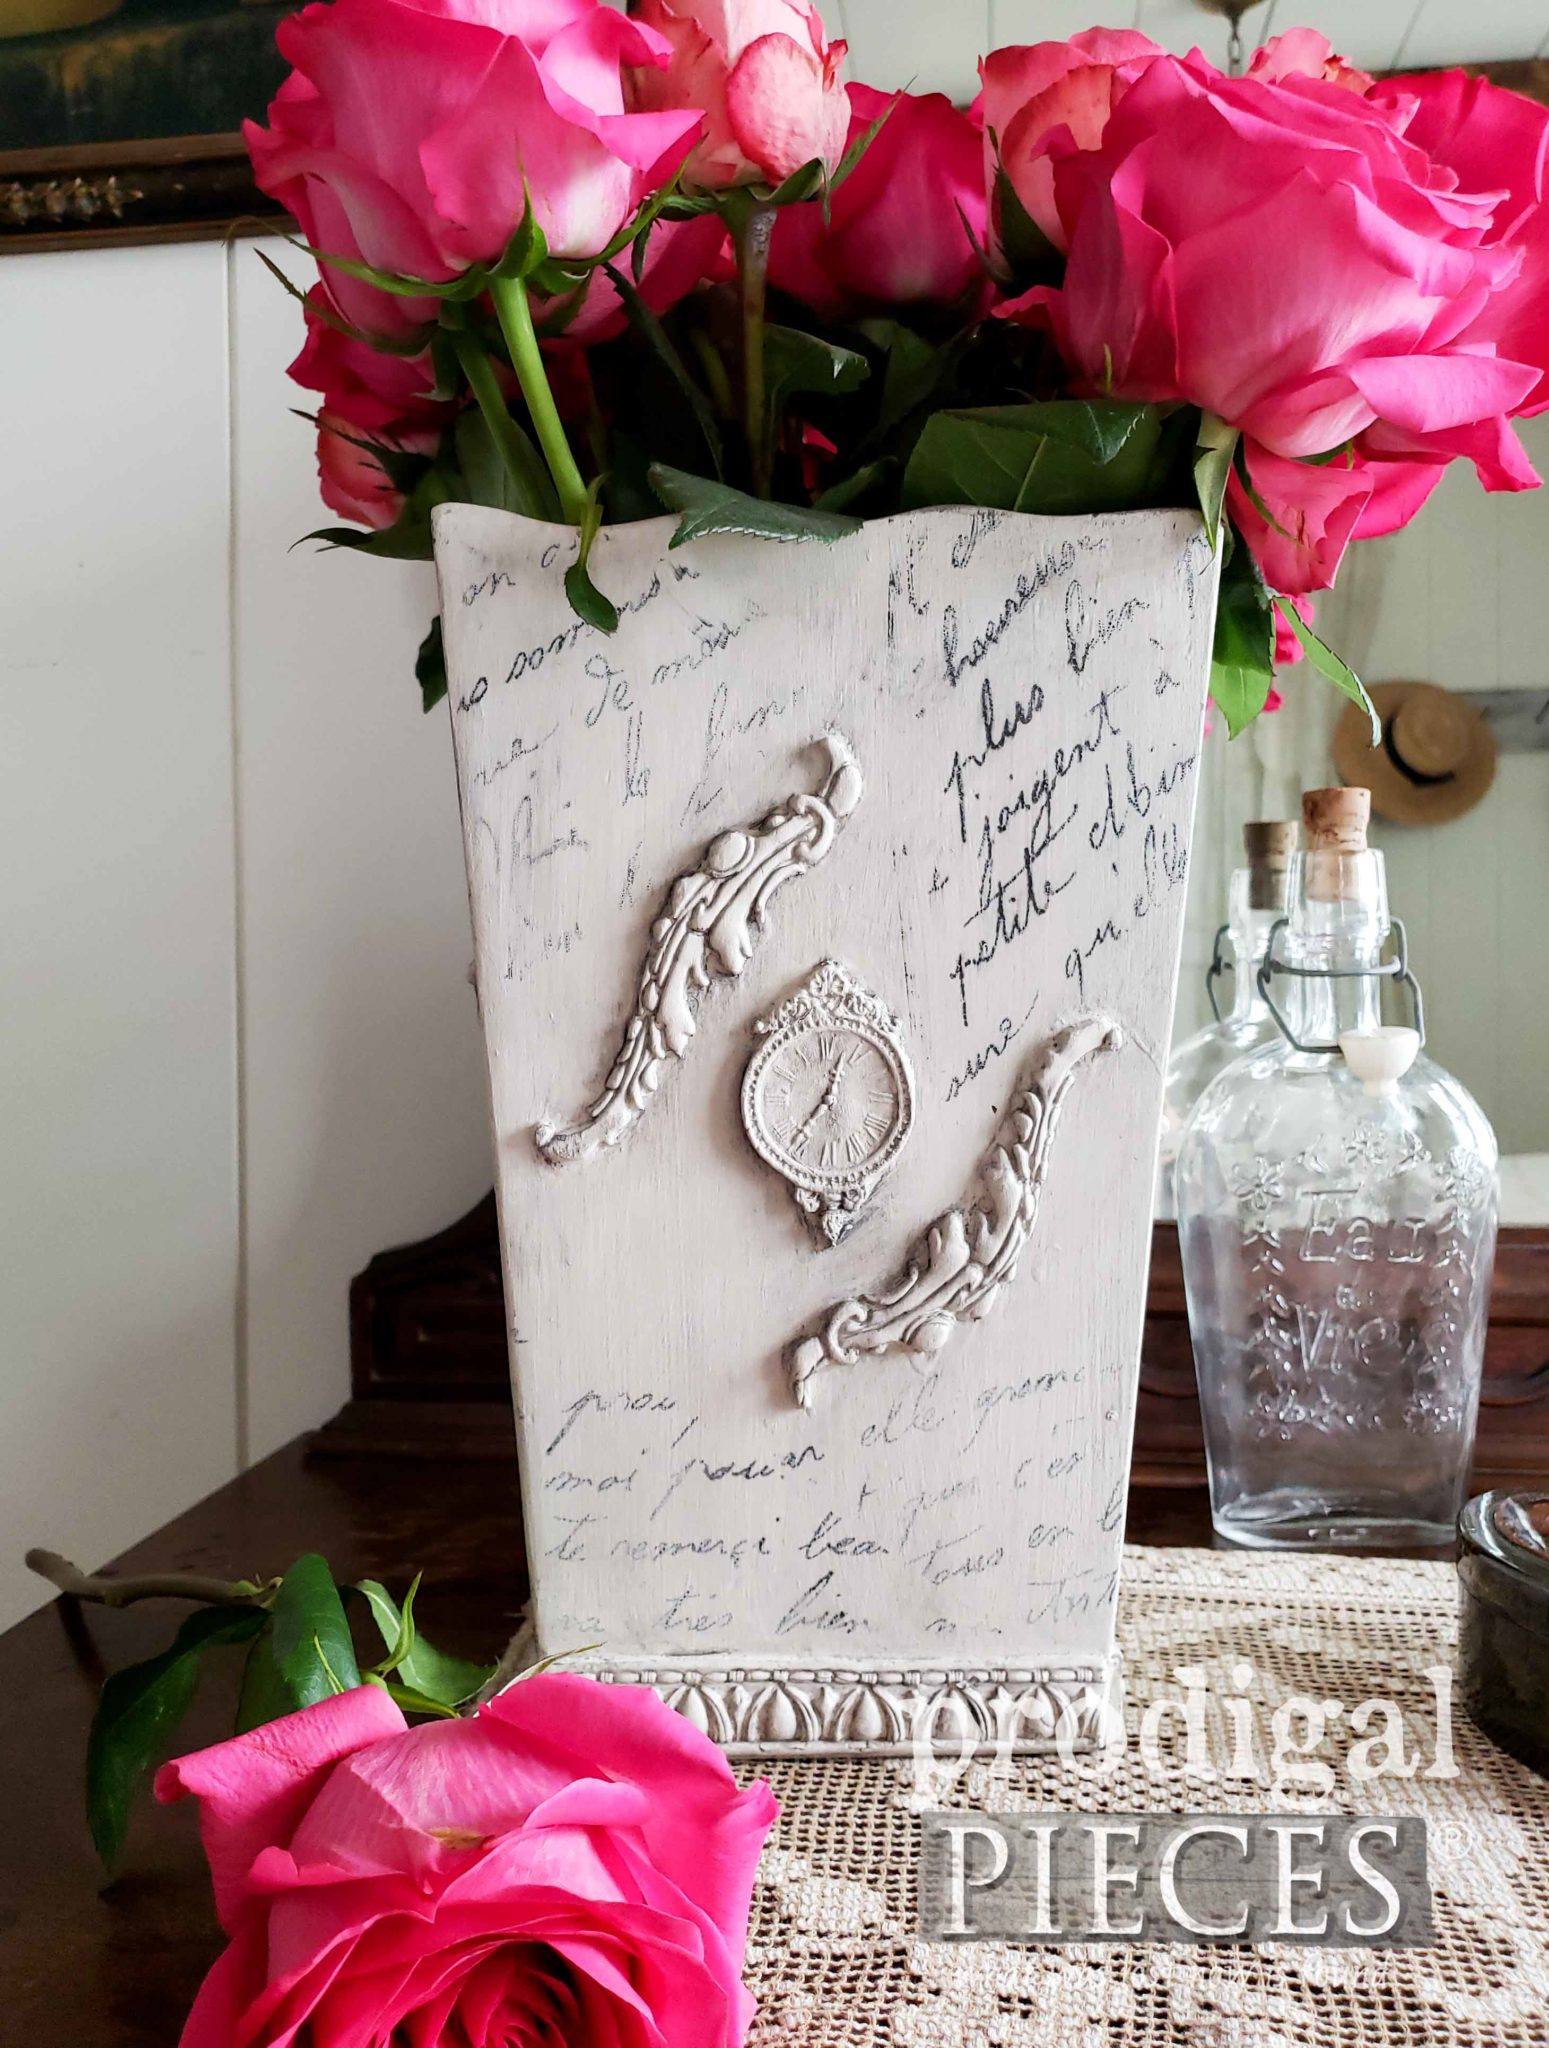 Upcycled French Script Vase from Thrift Store Finds by Larissa of Prodigal Pieces | prodigalpieces.com #prodigalpieces #diy #home #vintage #homedecor